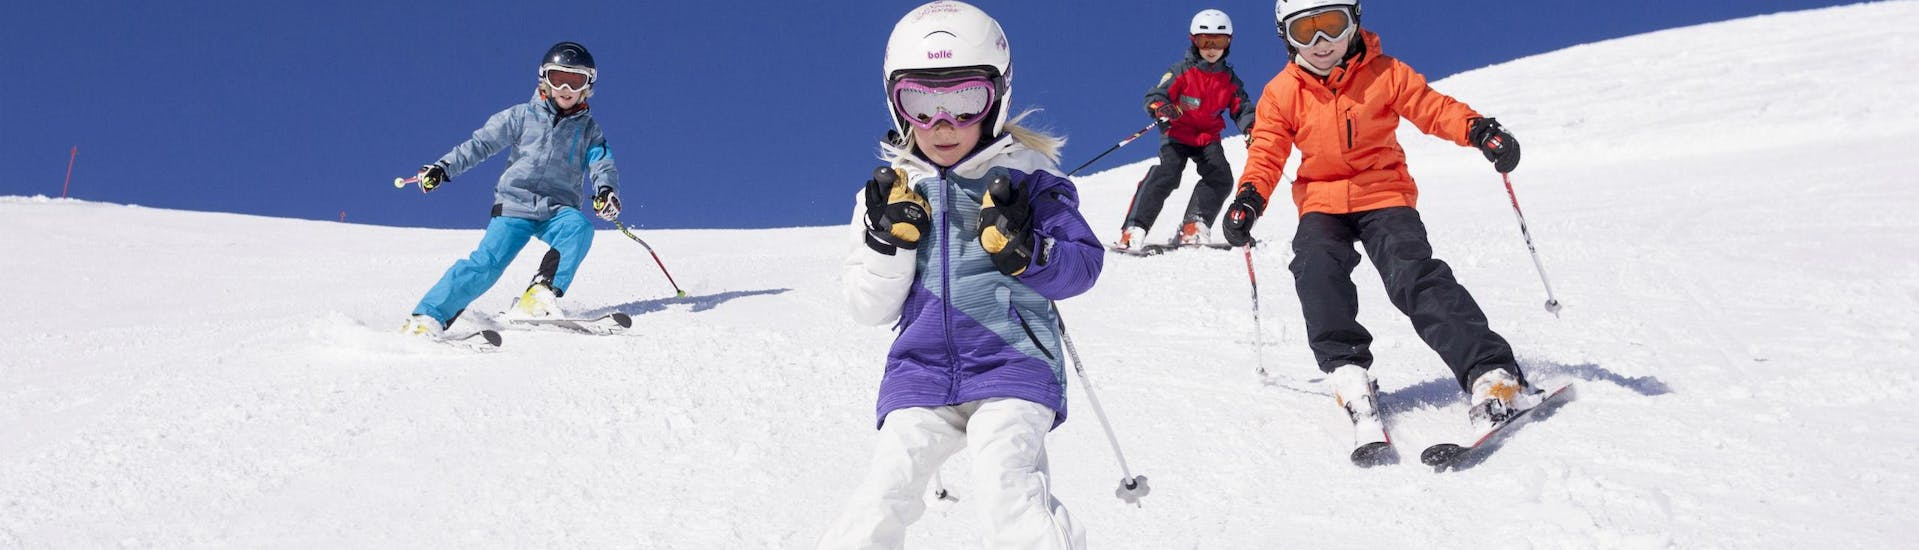 A group of children is enjoying their Kids Ski Lessons (6-12 years) - Full Day - All Levels with the ski school Skischule Zugspitze Grainau in the ski resort of Garmisch-Classic.